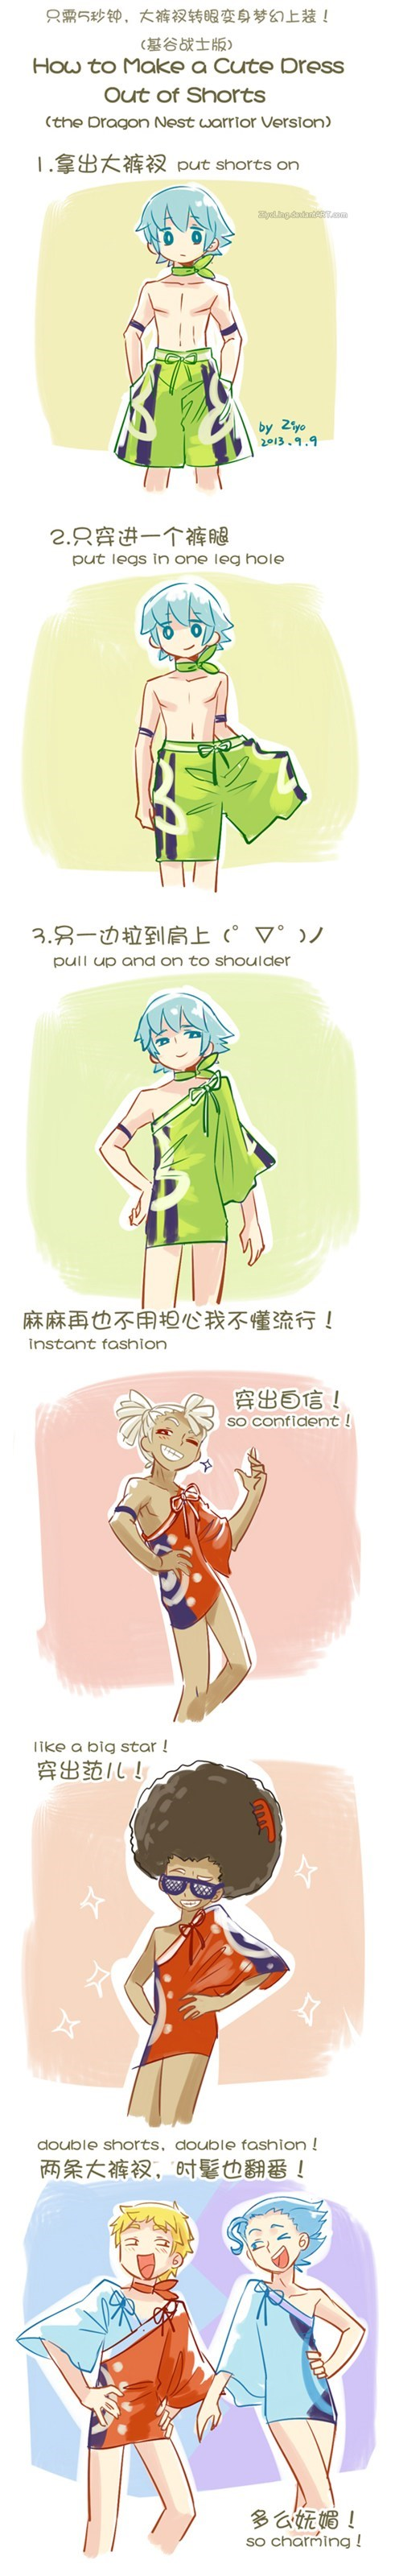 shorts anime Life Hack DIY dress - 7797426688